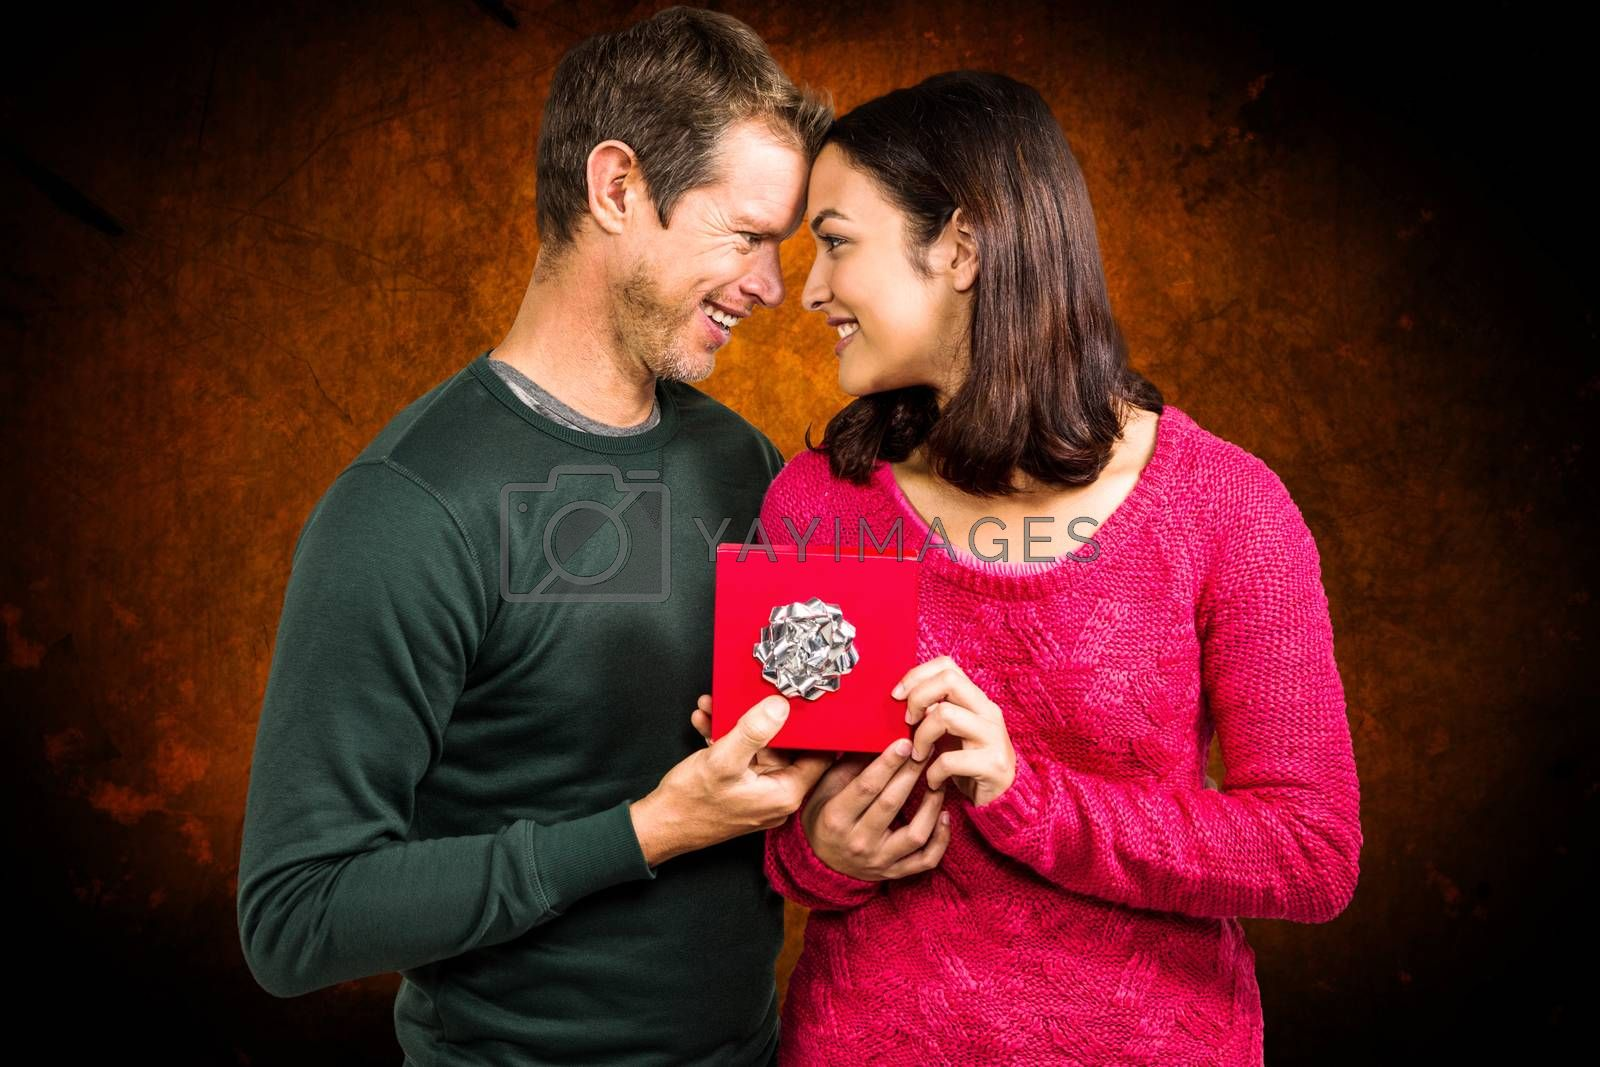 Happy couple holding gift box  against shades of brown